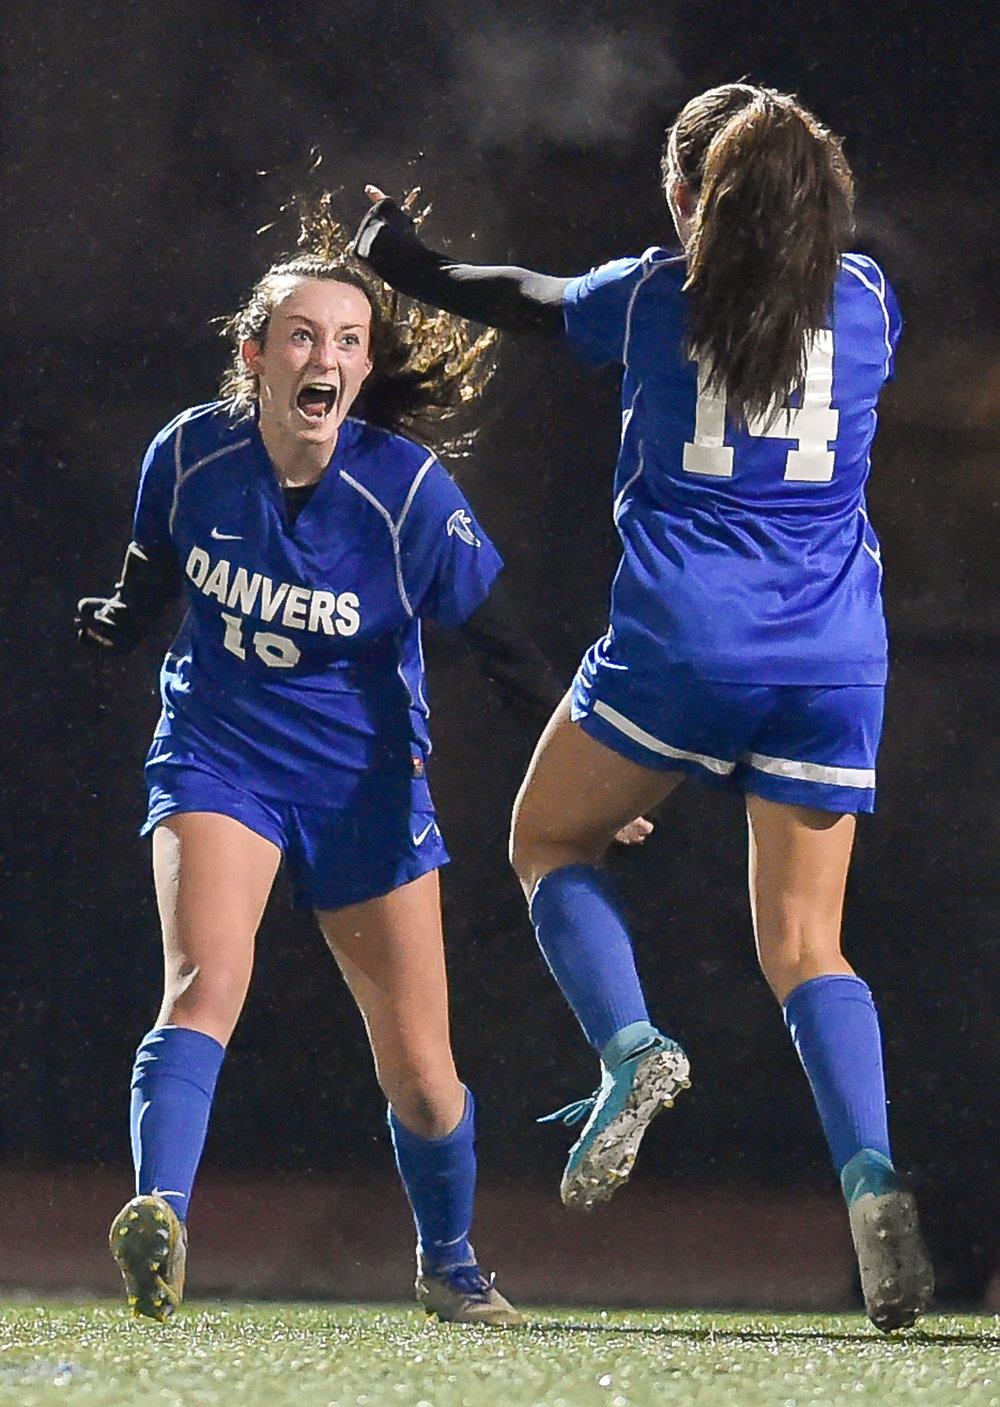 Riley Baker and Abby Cash of Danvers celebrate the teams only goal during their 1-0 MIAA Div. 2 North Sectional Finals win over Winchester at Manning Field in Lynn, Monday, Nov. 13, 2017. [Wicked Local Staff Photo / David Sokol]